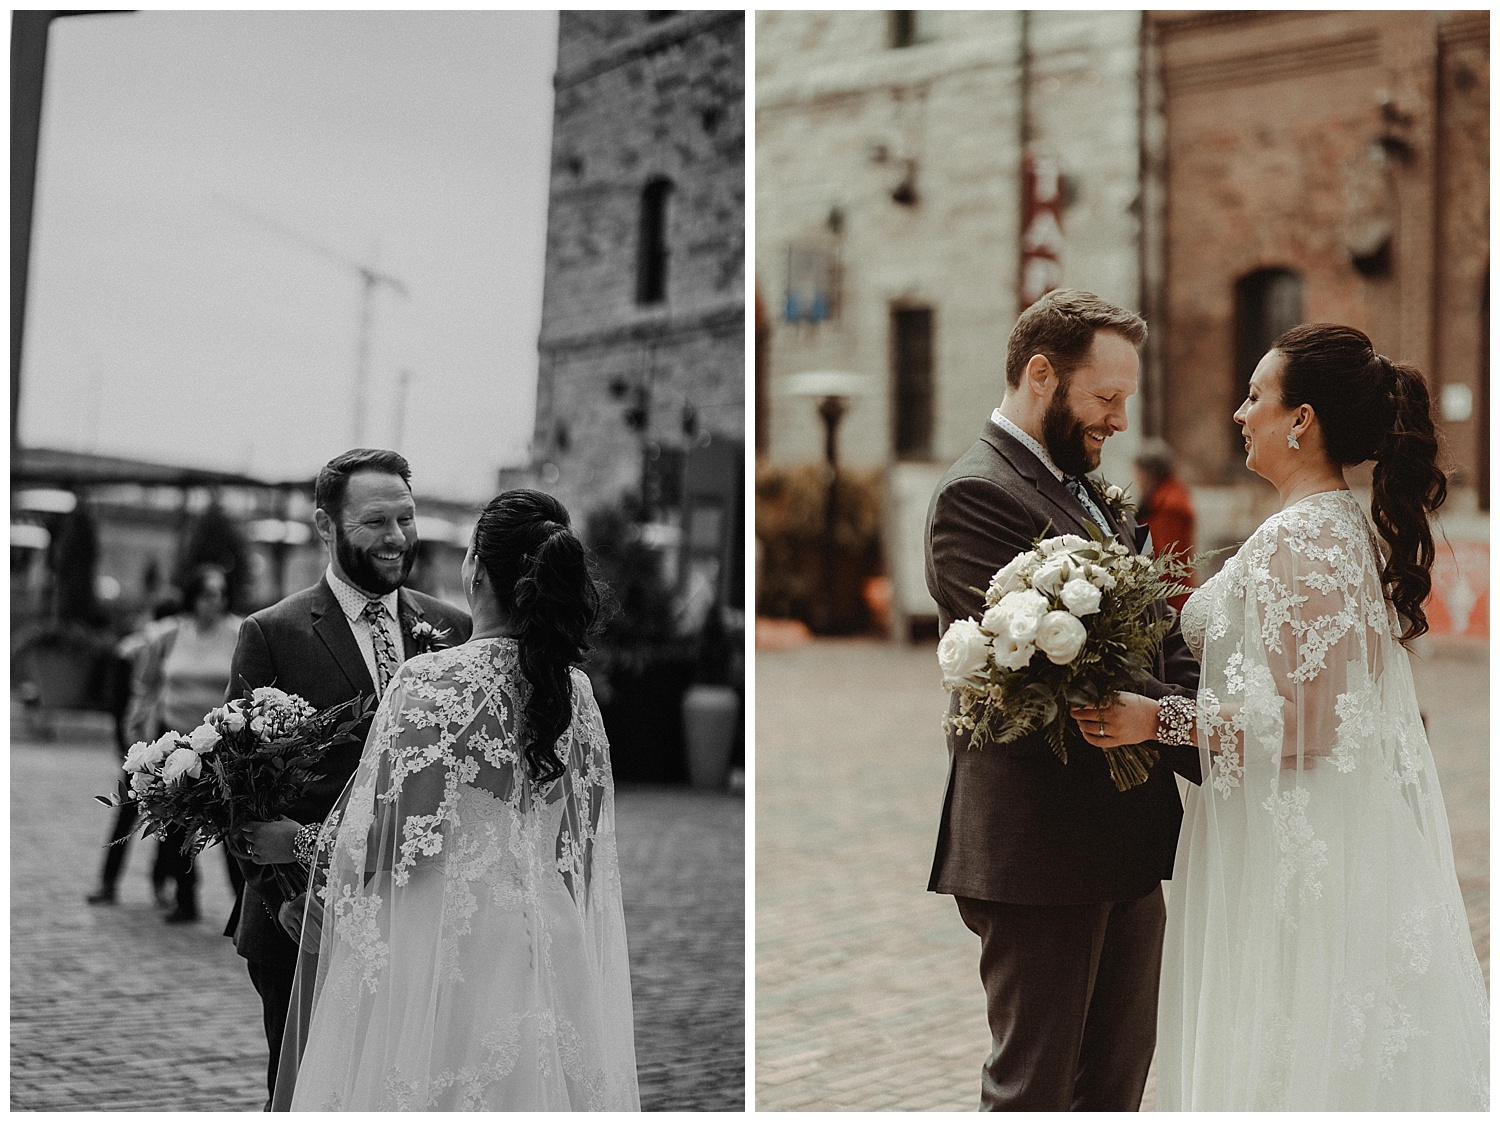 Katie Marie Photography | Archeo Wedding Arta Gallery Wedding | Distillery District Wedding | Toronto Wedding Photographer | Hamilton Toronto Ontario Wedding Photographer |_0013.jpg